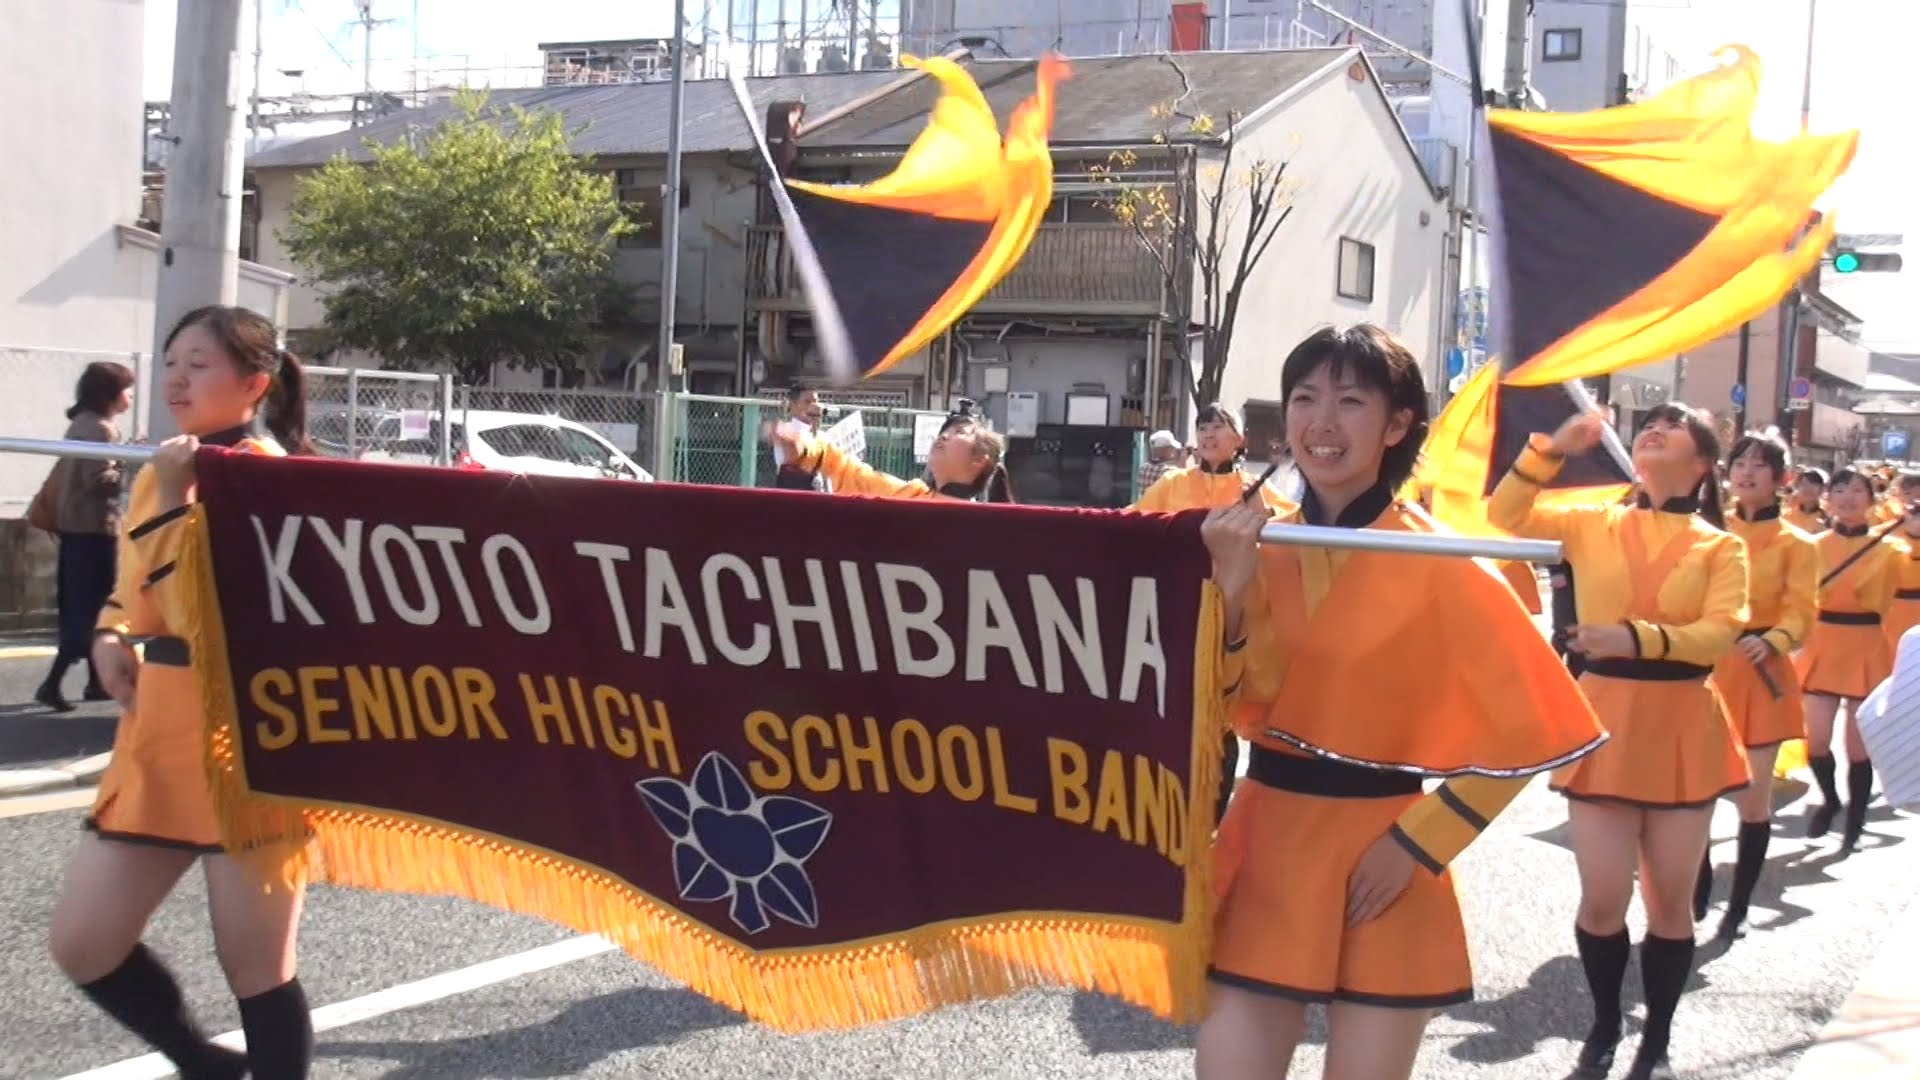 Background – Band | Kyoto Tachibana S H S  Band - Unofficial